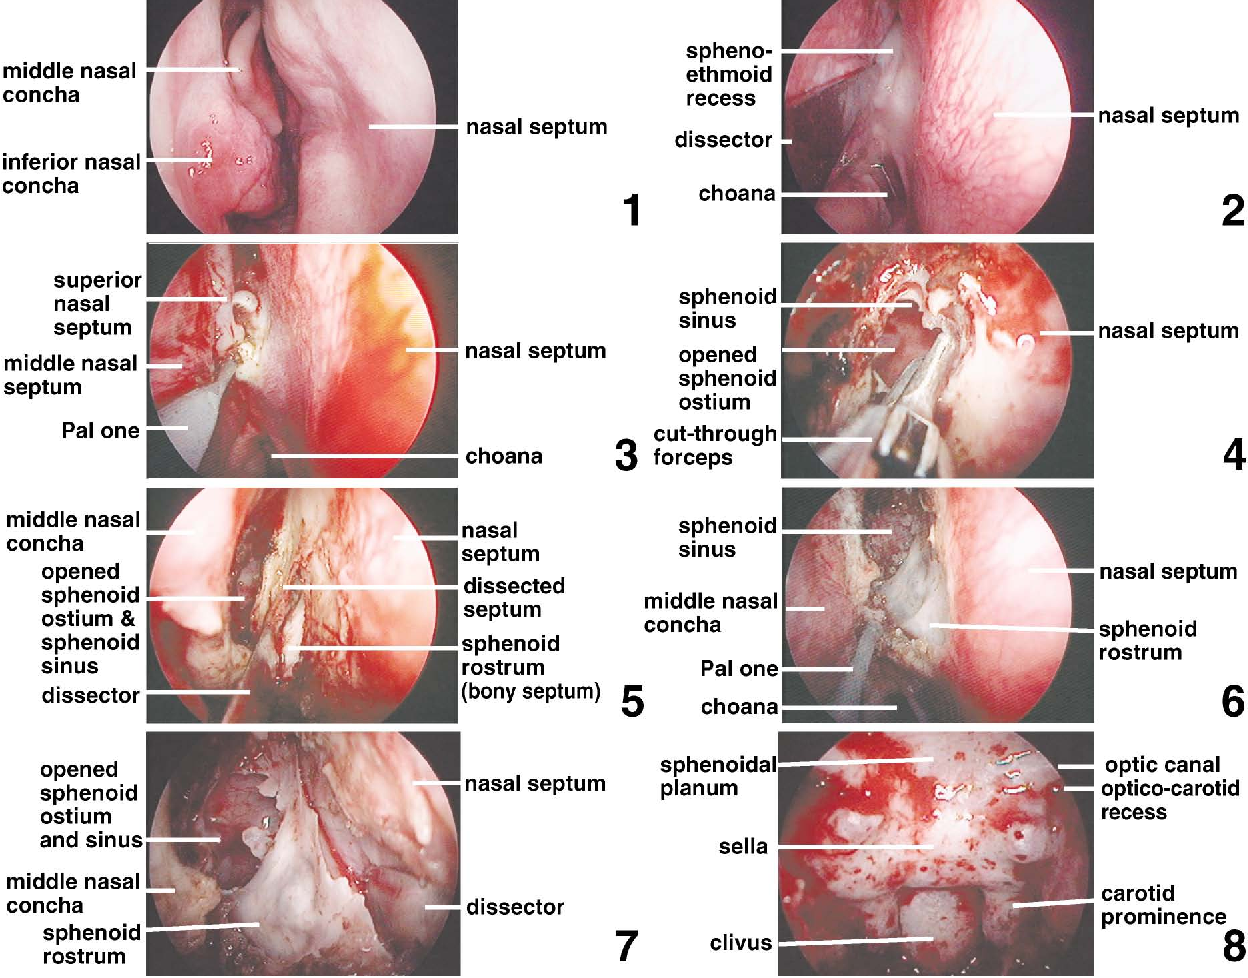 Figure 16 From Endoscopic Endonasal Pituitary And Skull Base Surgery